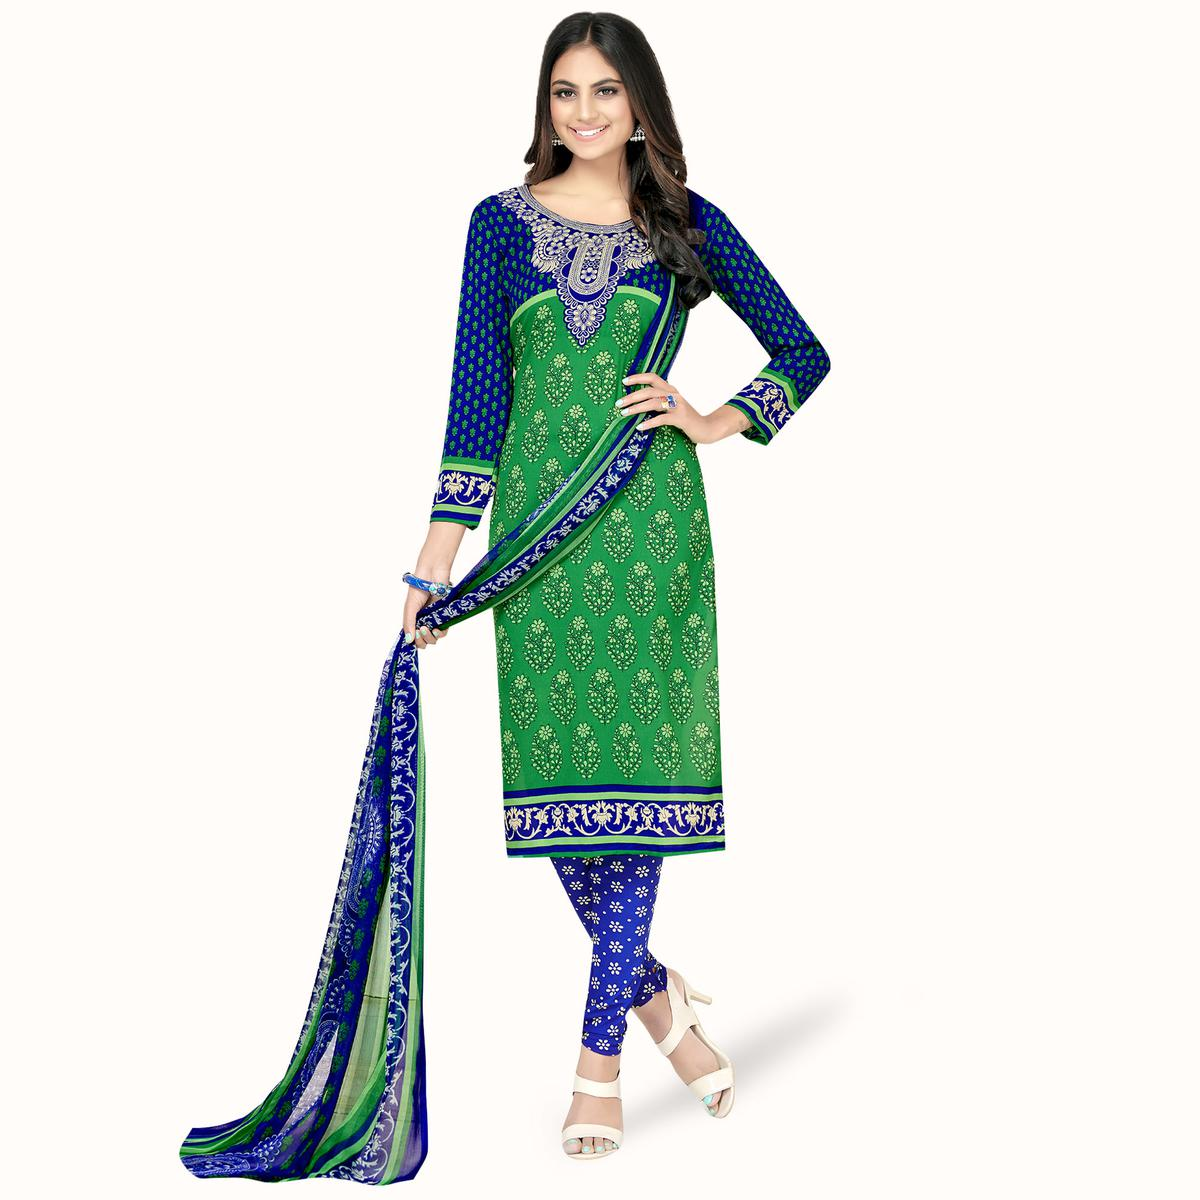 Pleasant Green-Blue Colored Casual Printed Crepe Dress Material